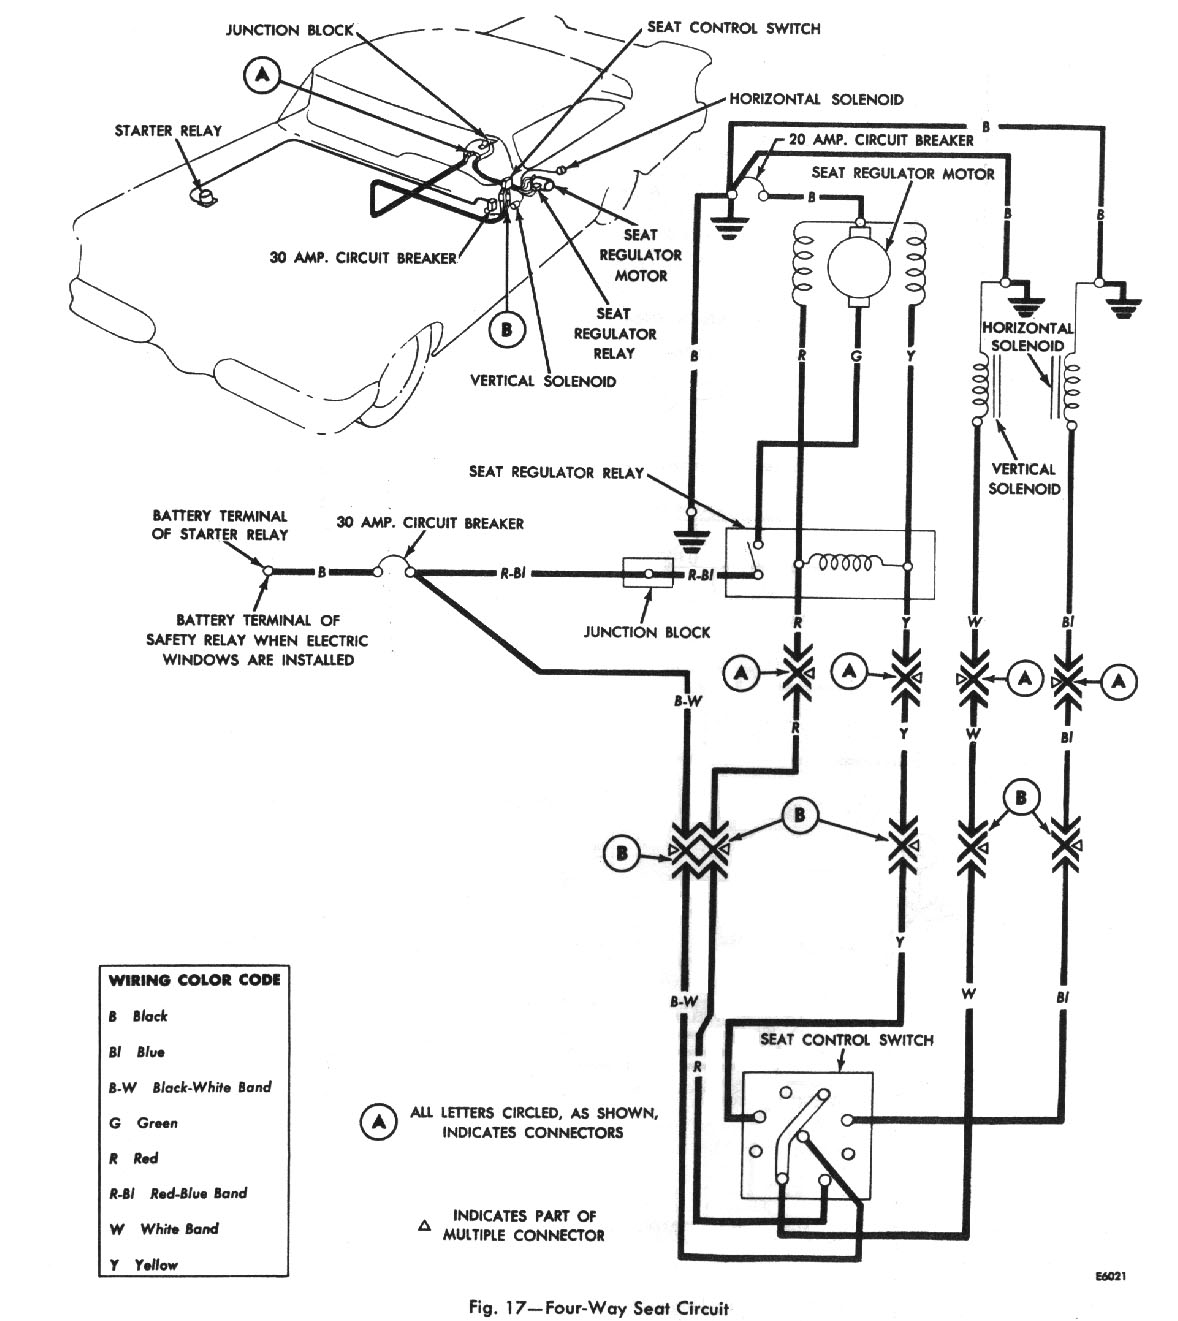 1959 Rolls Royce Wiper Motor Wiring Diagram